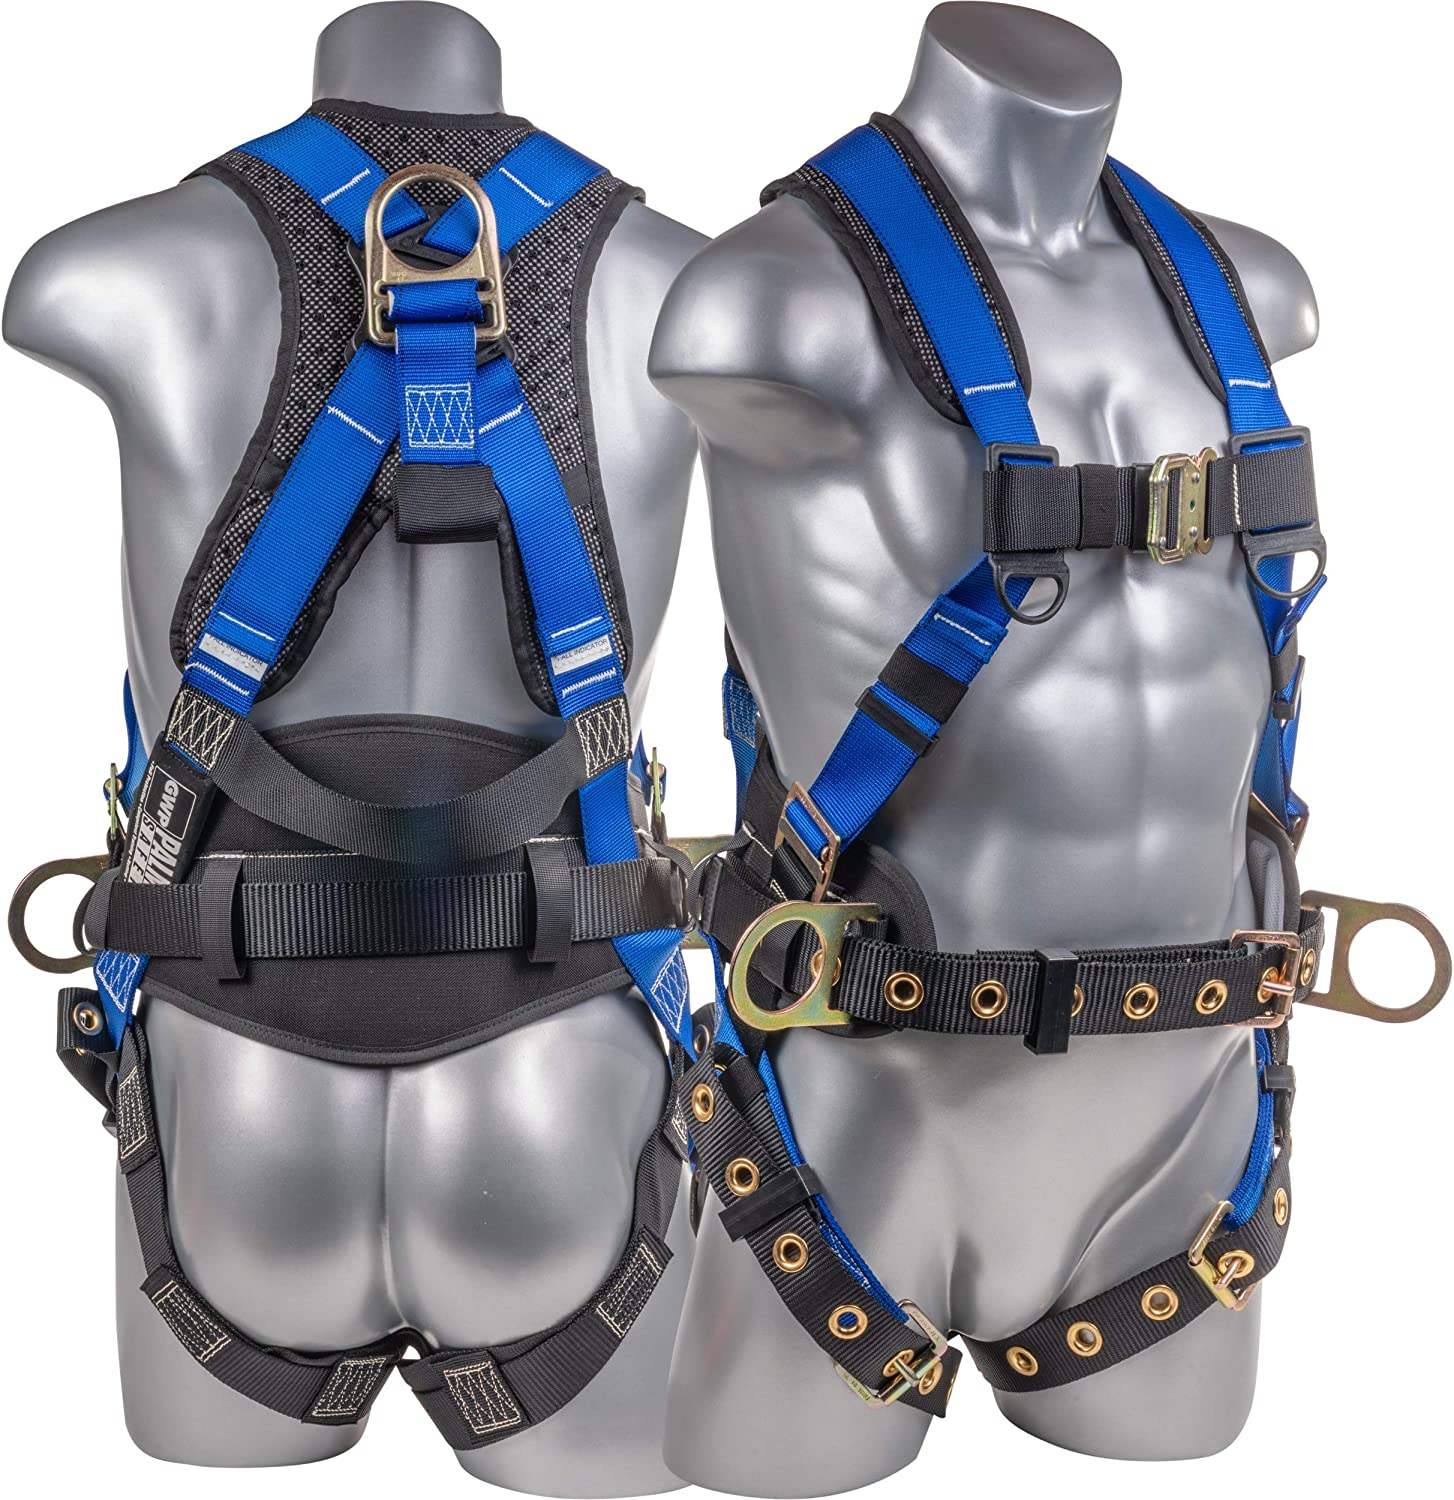 Palmer Safety Fall Protection Full Padded point 5 Harness Large discharge sale sale Body